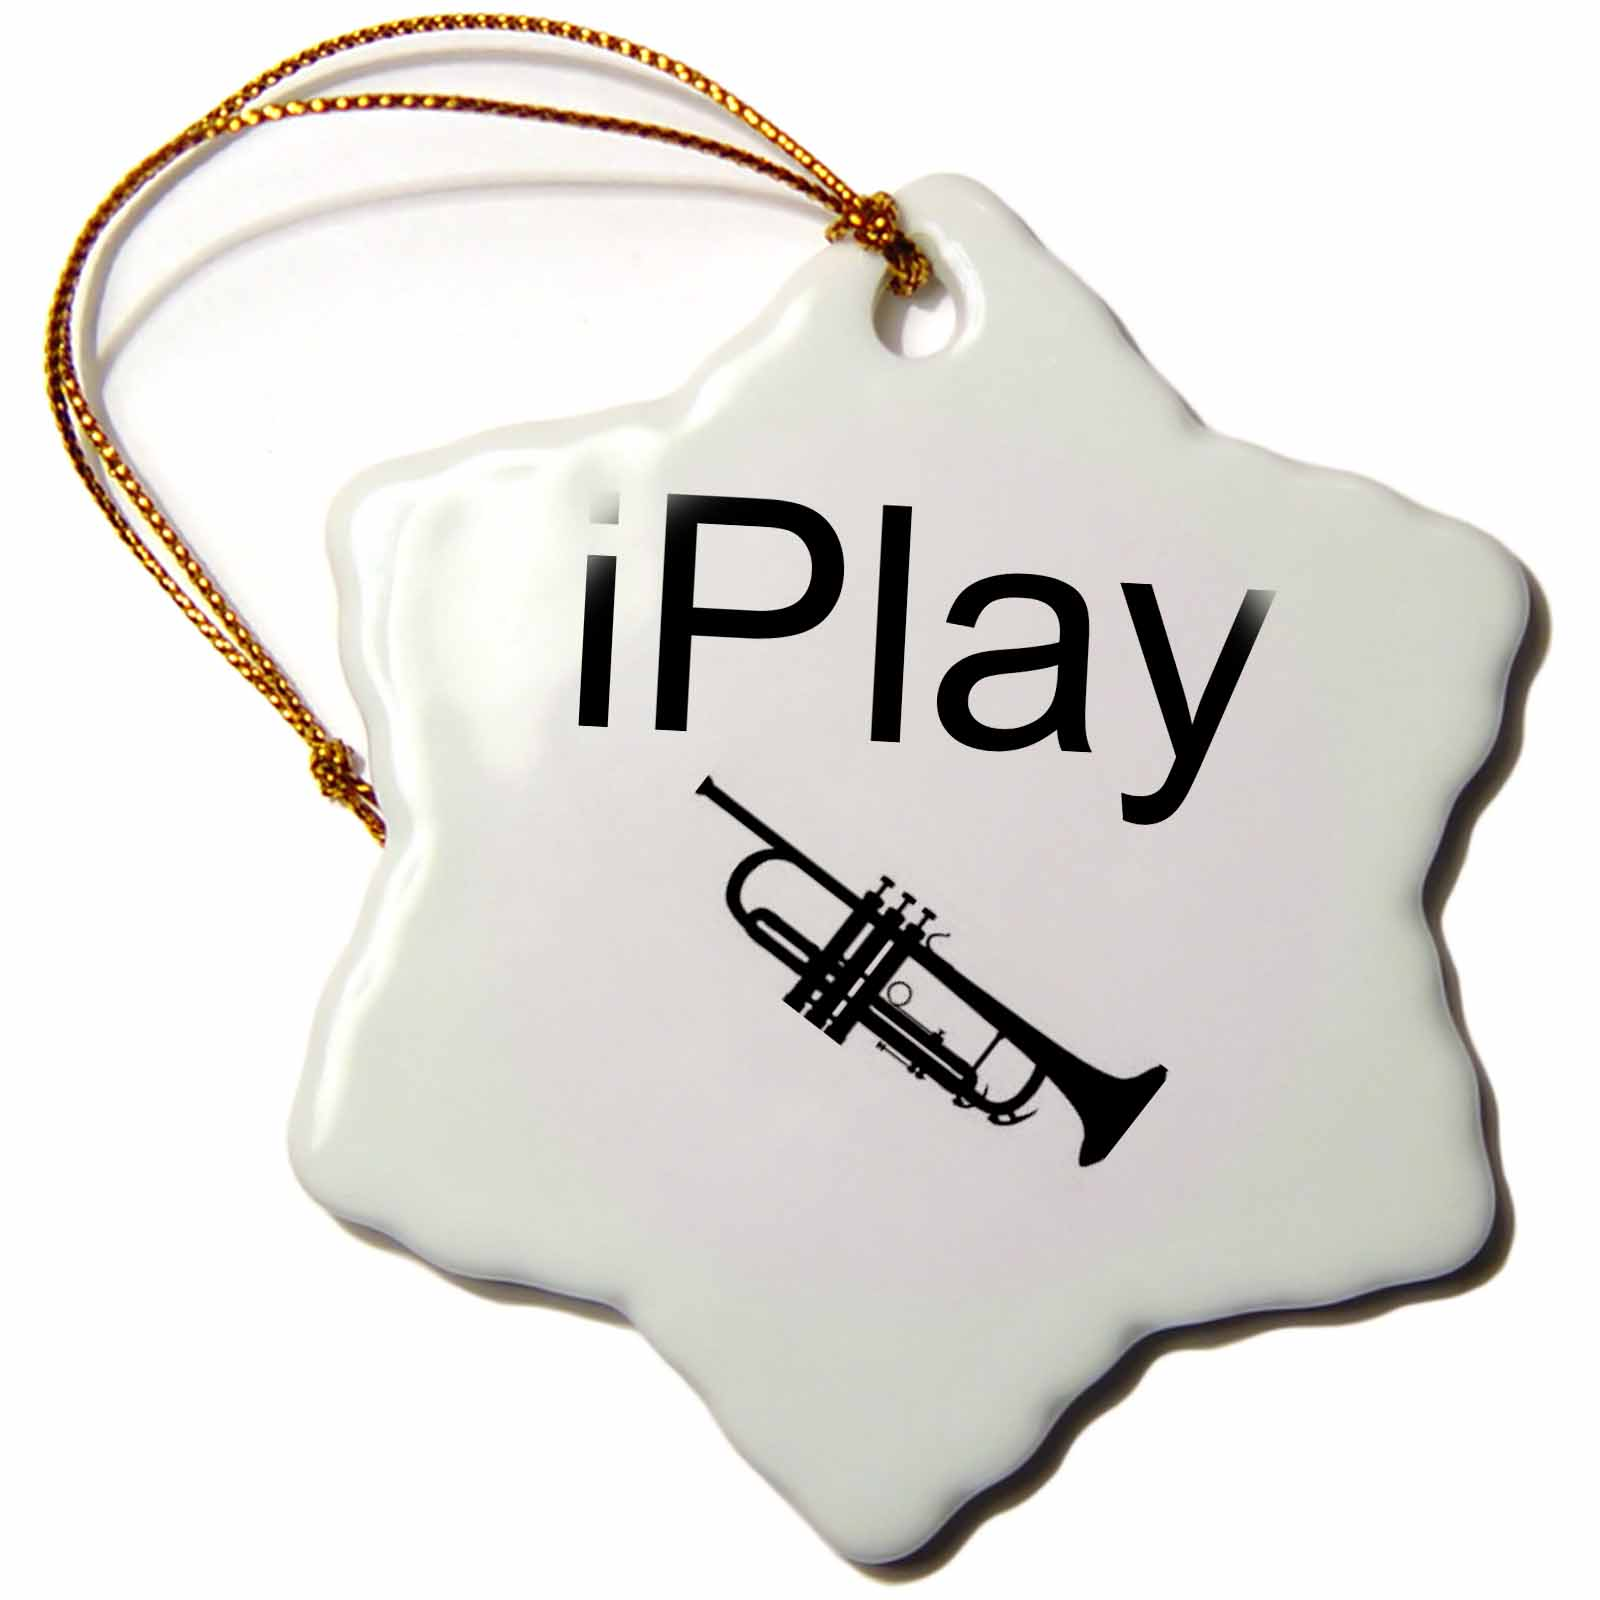 3dRose iPlay, black lettering on white background with picture of trumpet, Snowflake Ornament, Porcelain, 3-inch